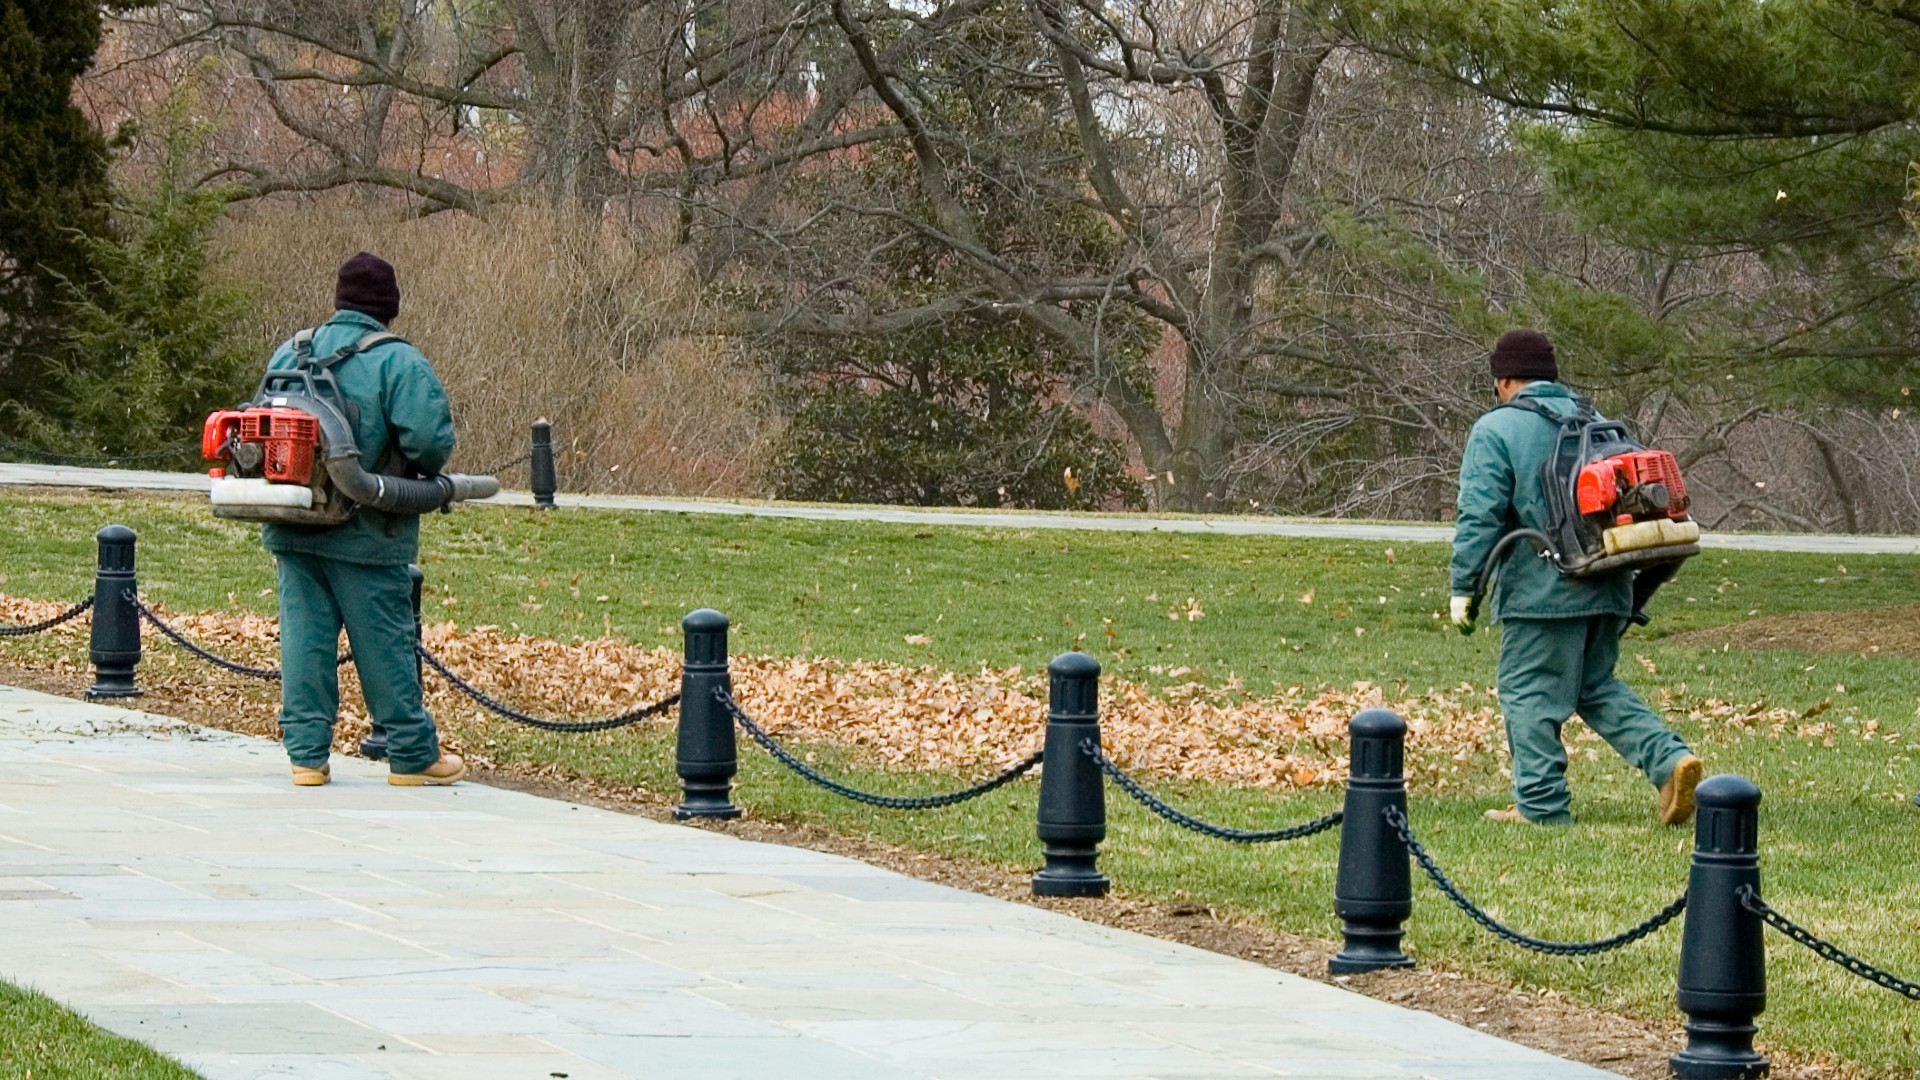 Workers use gas-powered leaf blowers in this undated file image. (Getty Images)